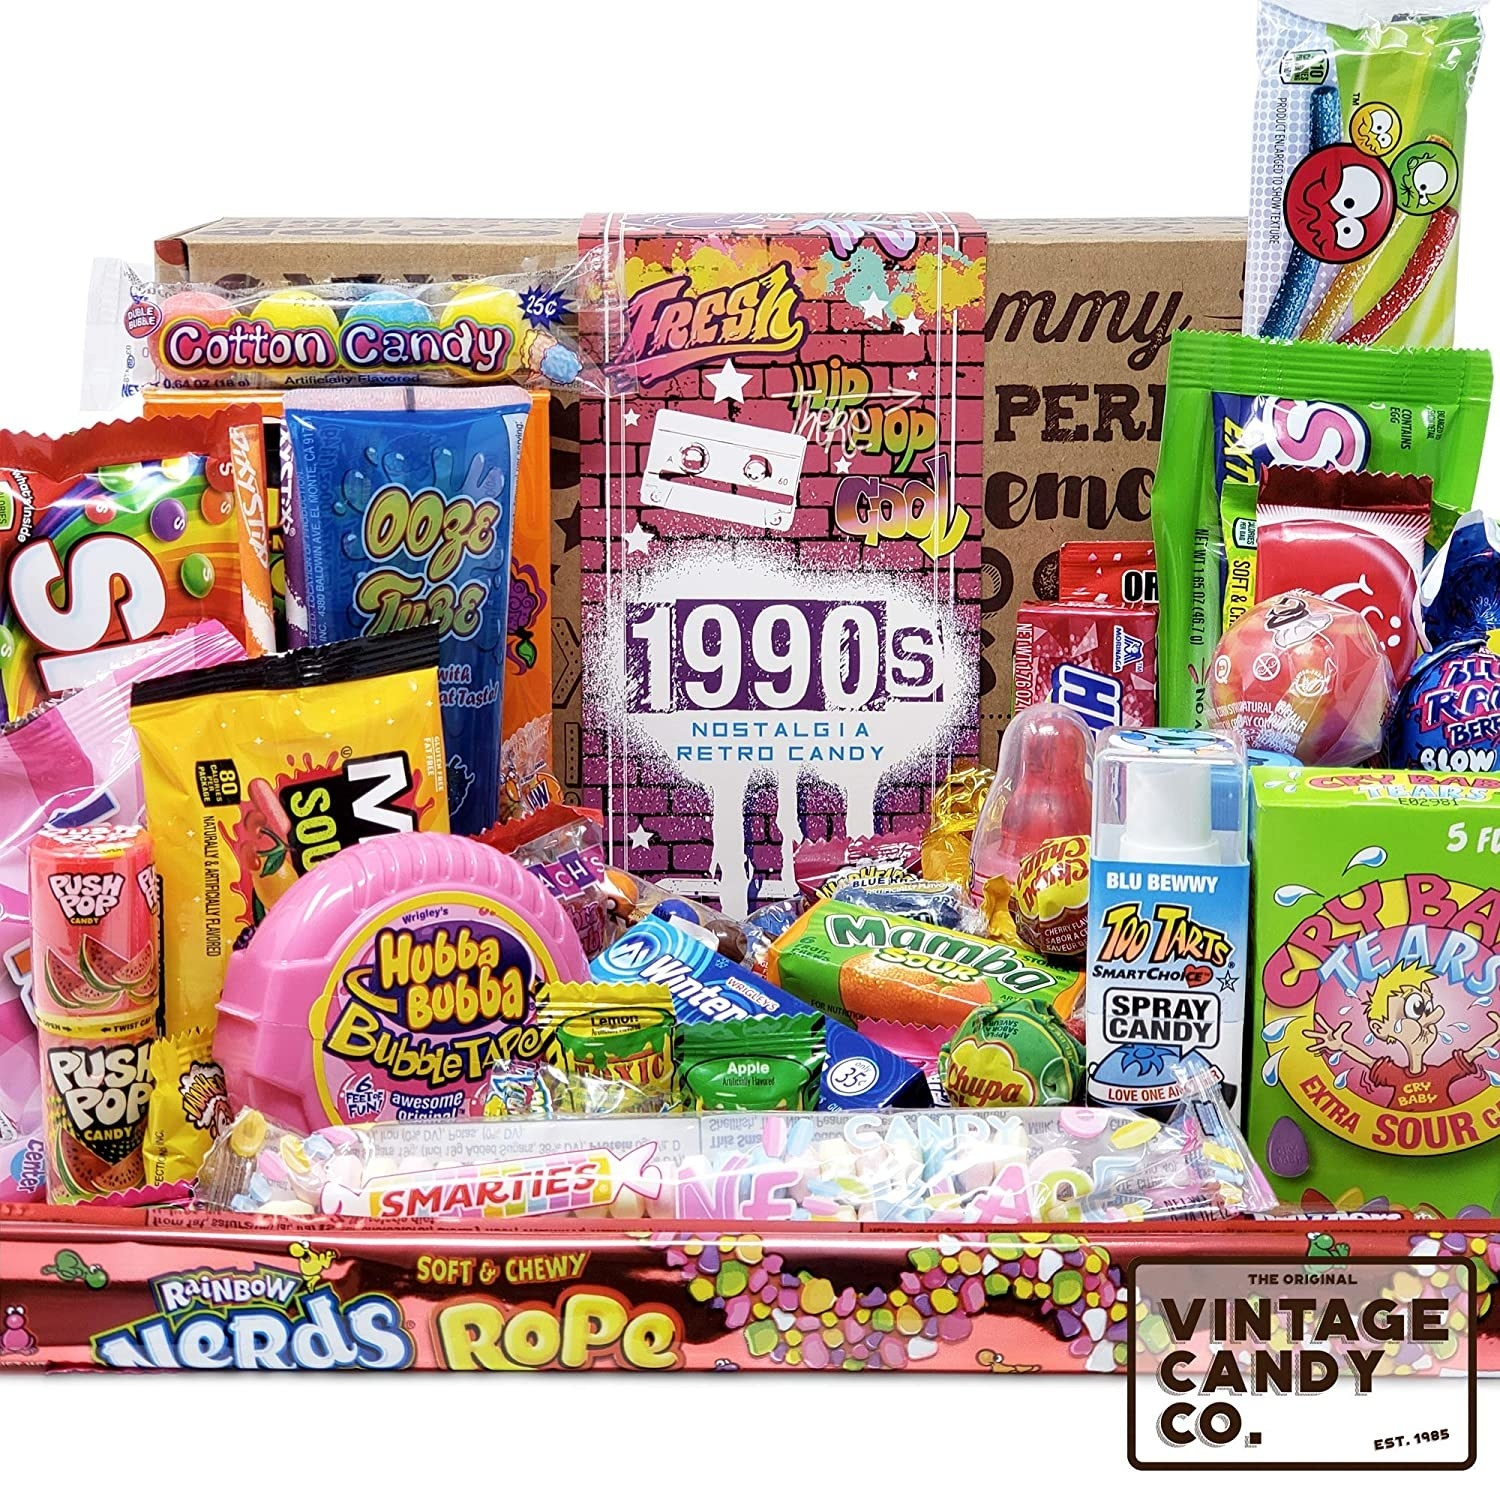 The candy bundle